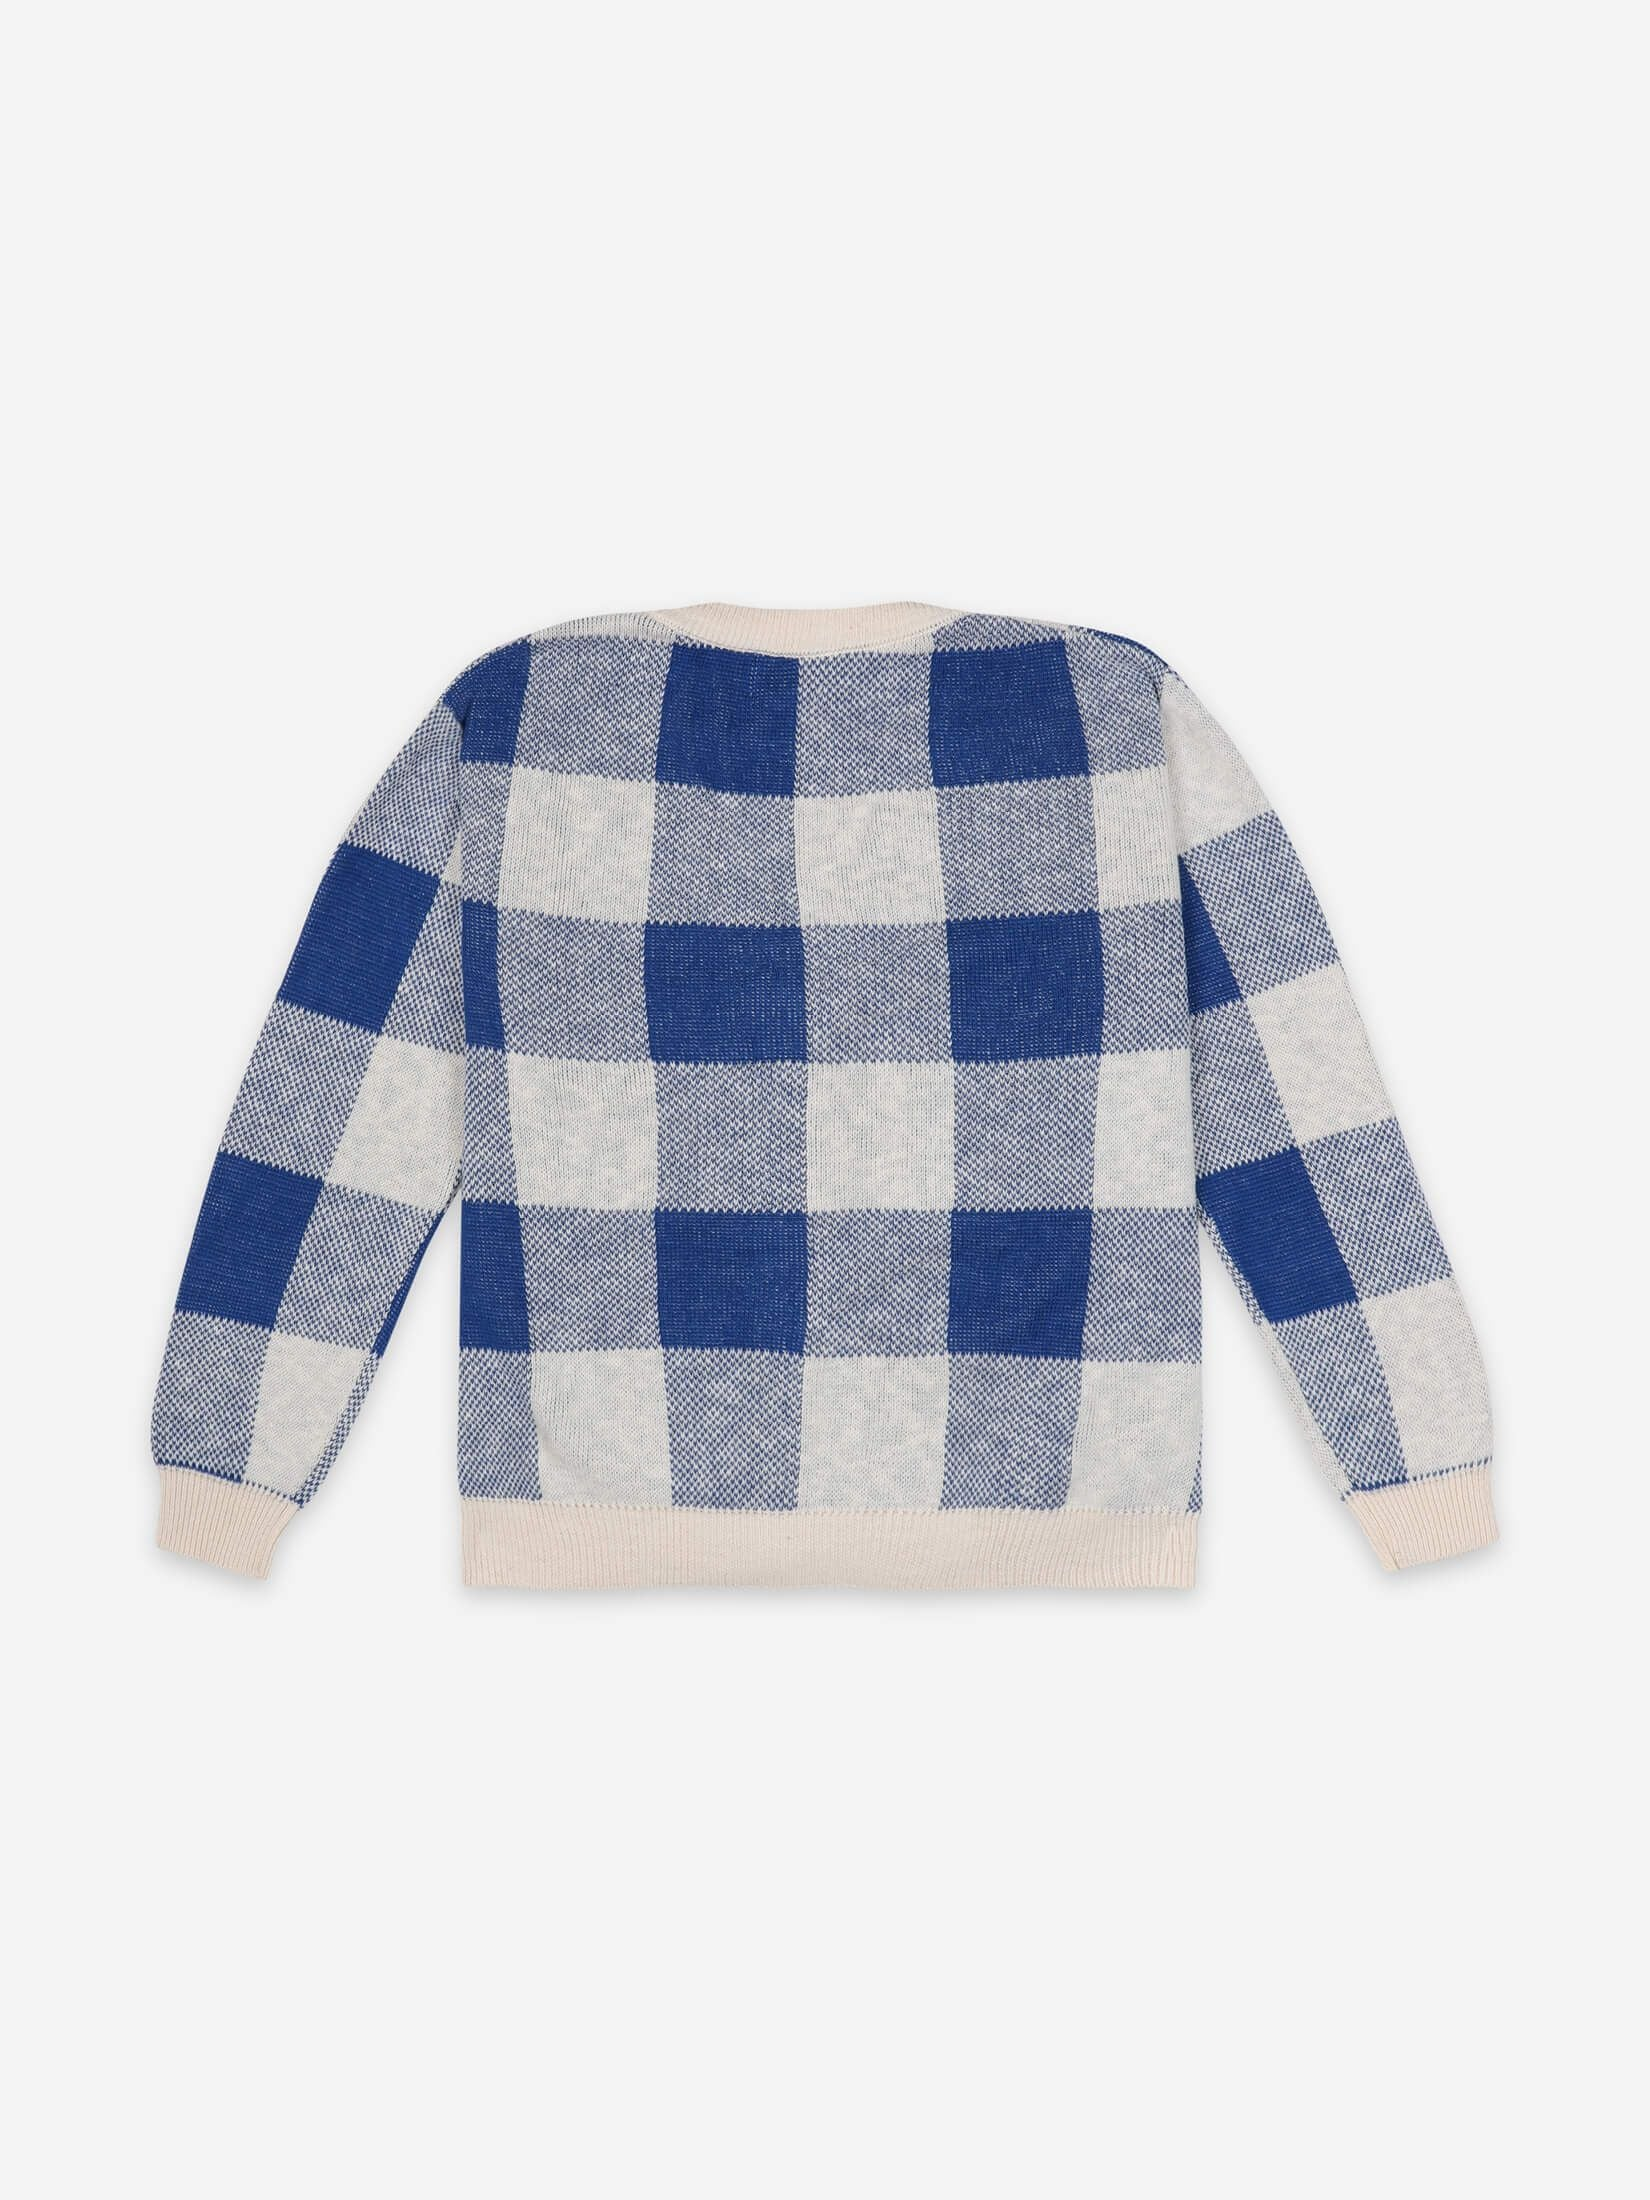 Bobo Choses  Gingham knitted Cardigan / women